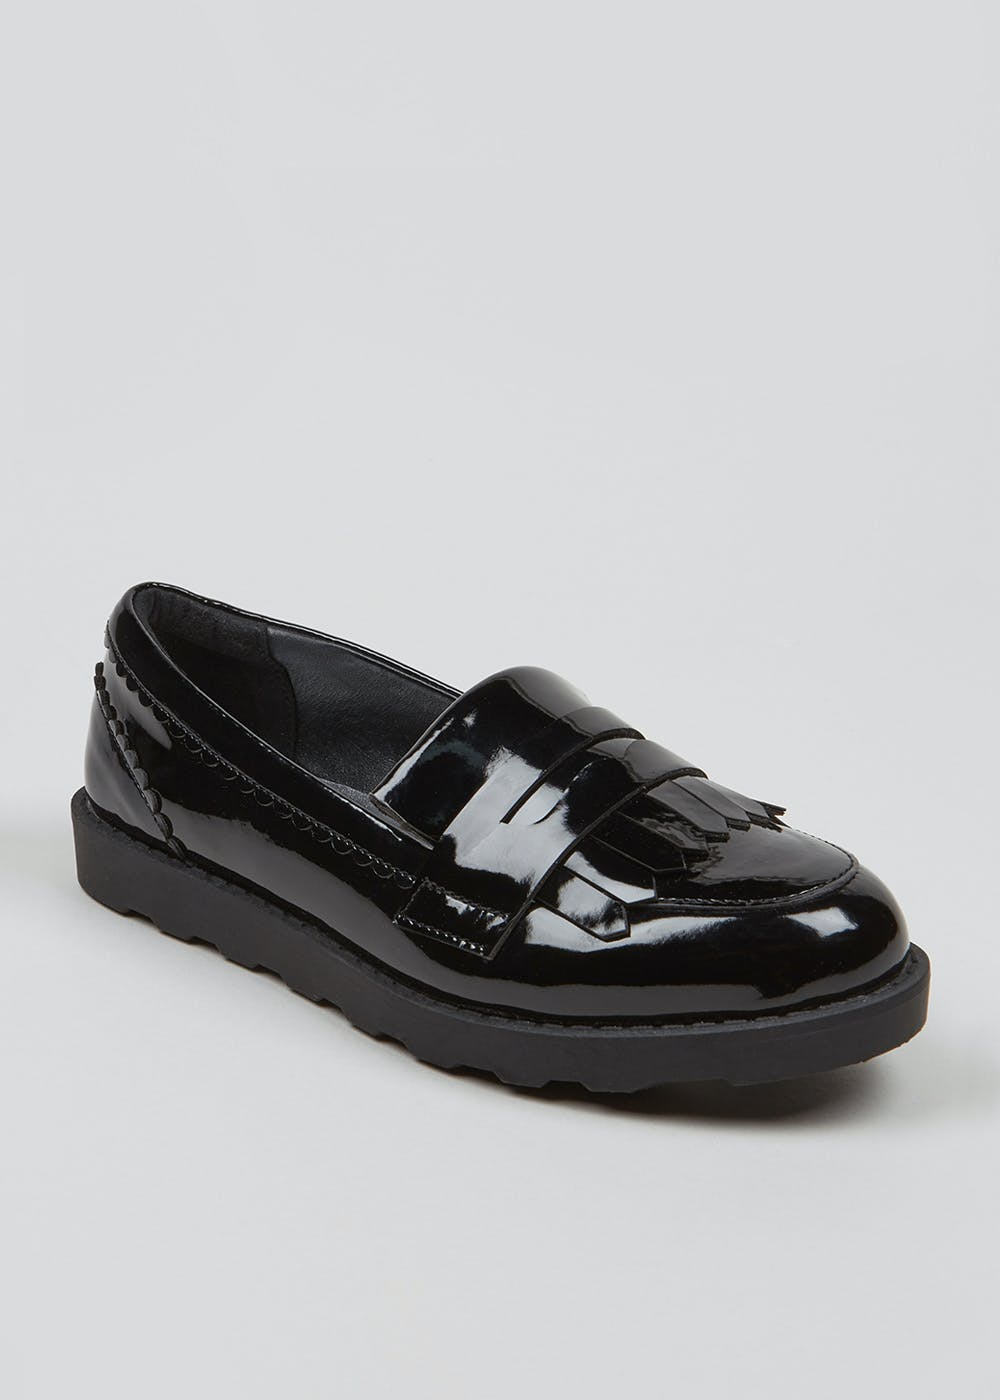 Girls Black Patent Loafer School Shoes